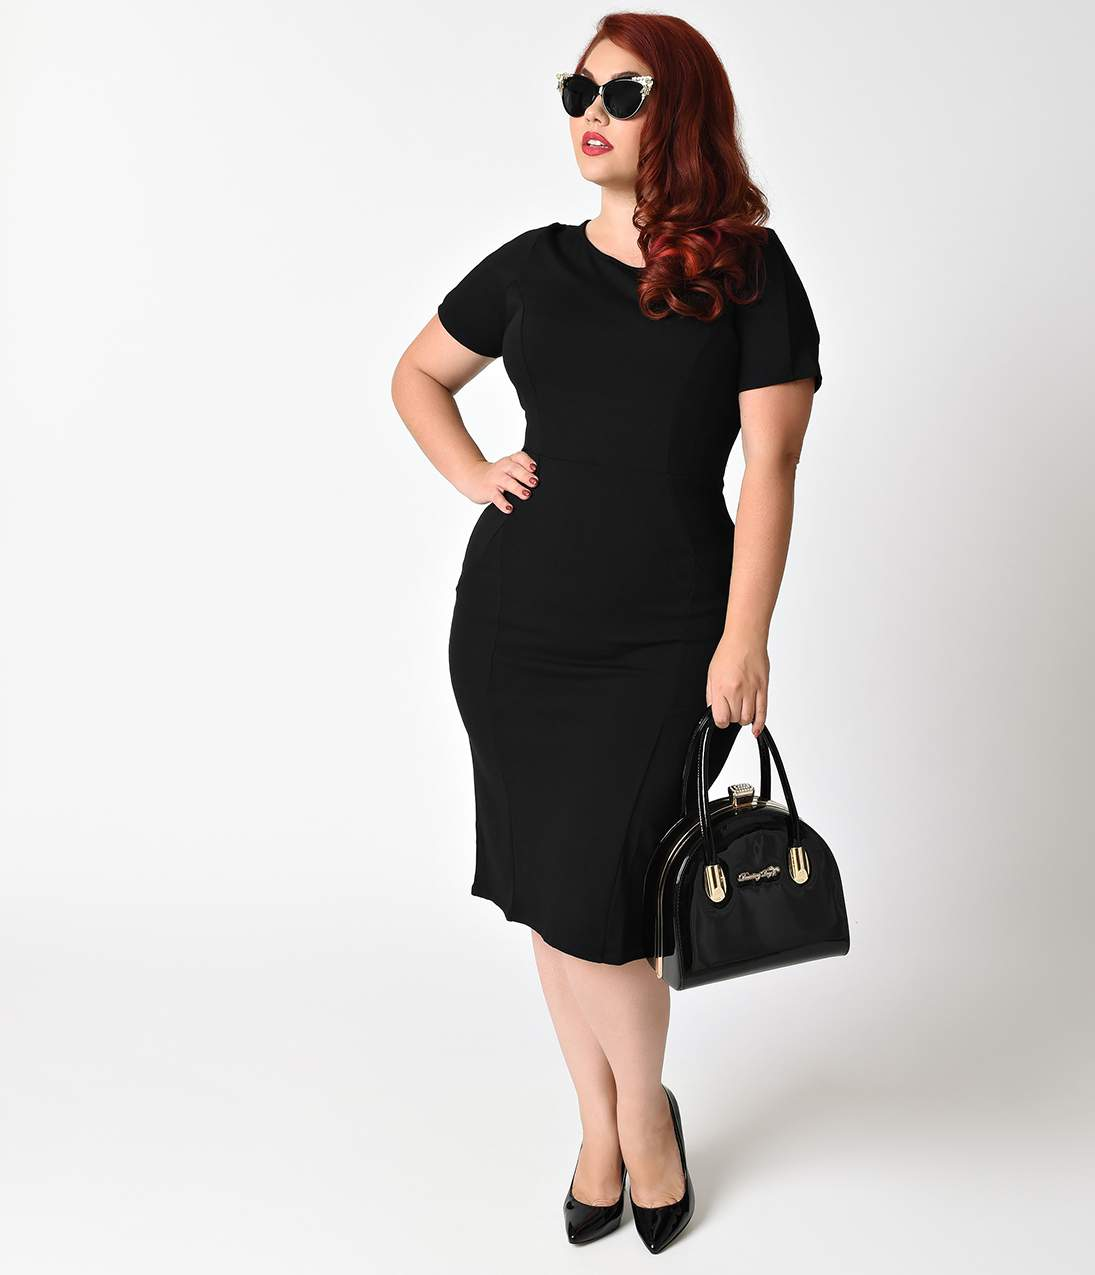 Plus Size Vintage Dresses, Plus Size Retro Dresses Unique Vintage Plus Size 1960S Style Black Short Sleeve Stretch Mod Wiggle Dress $48.00 AT vintagedancer.com